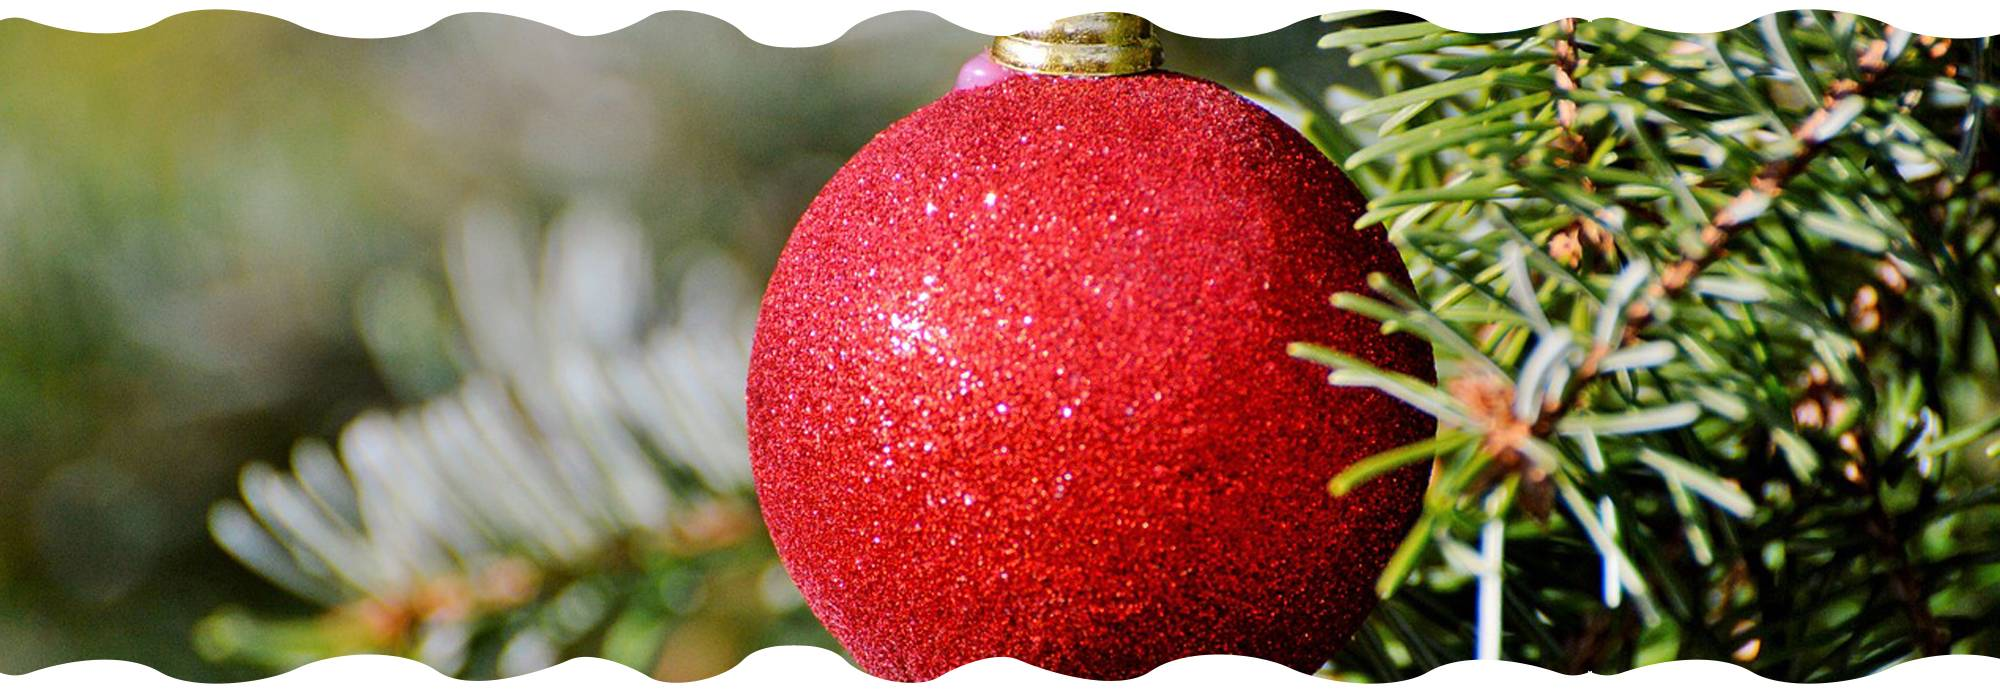 christmas-tree-campaign-gardencenternews-cost